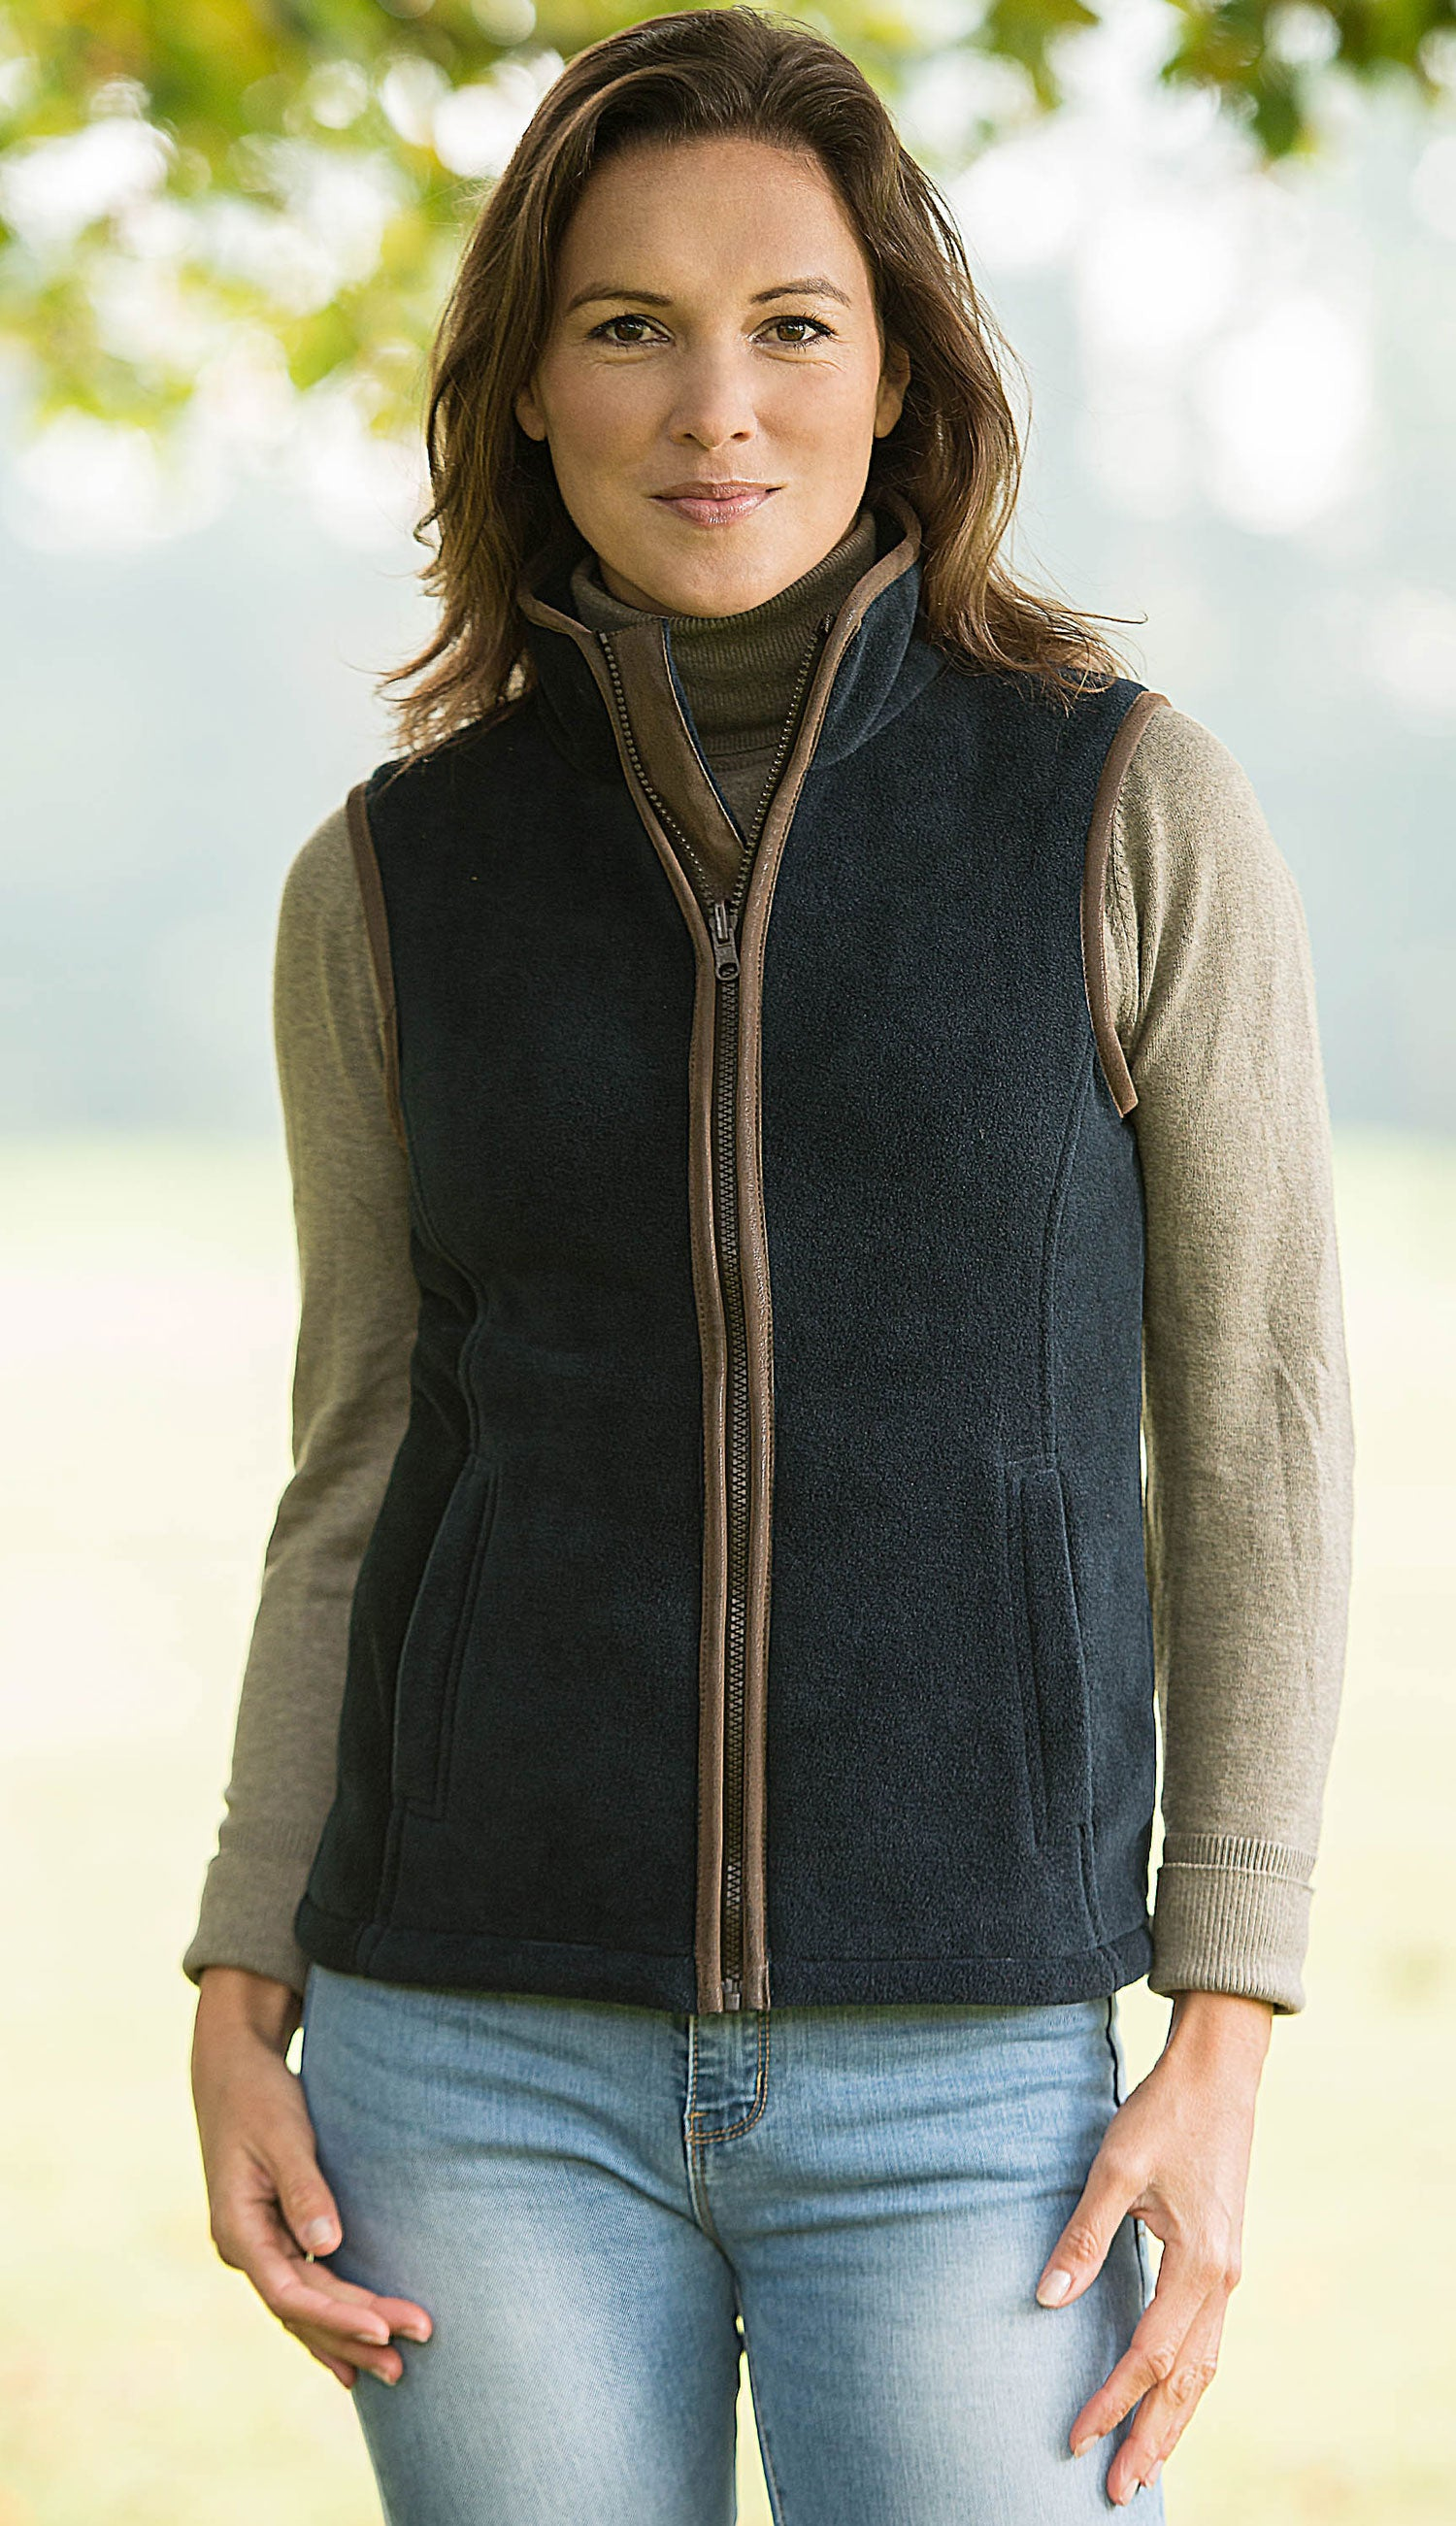 lady wearing Baleno Sally Ladies Fleece Gilet